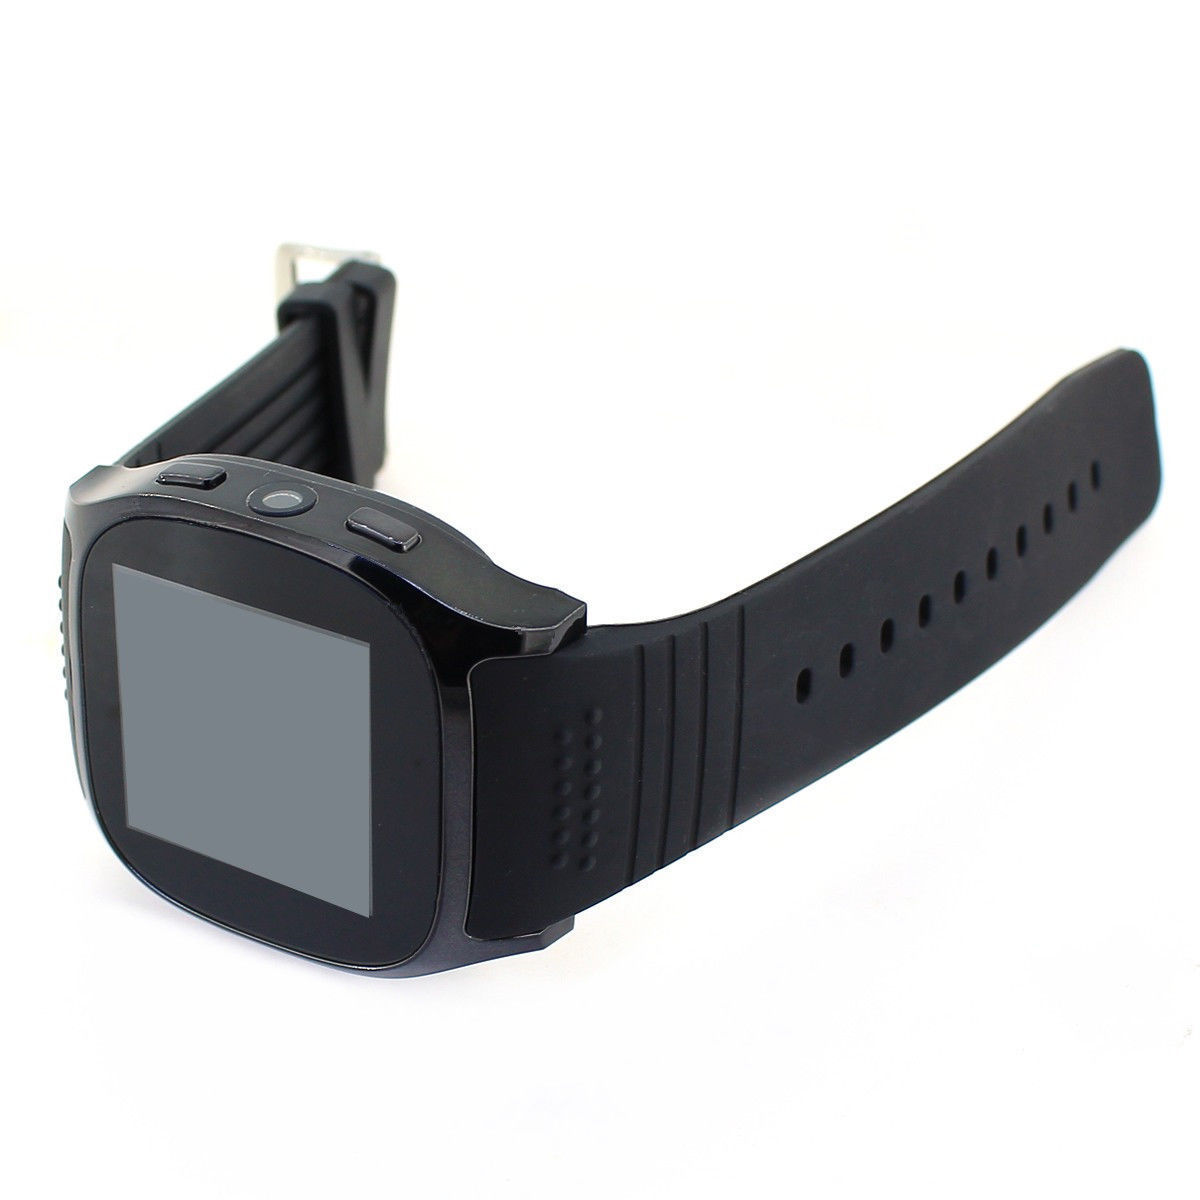 Smart Watch Waterproof Wifi 3G Smart Watch GPS Android Mobile Phone Watch With Heartrate Camera